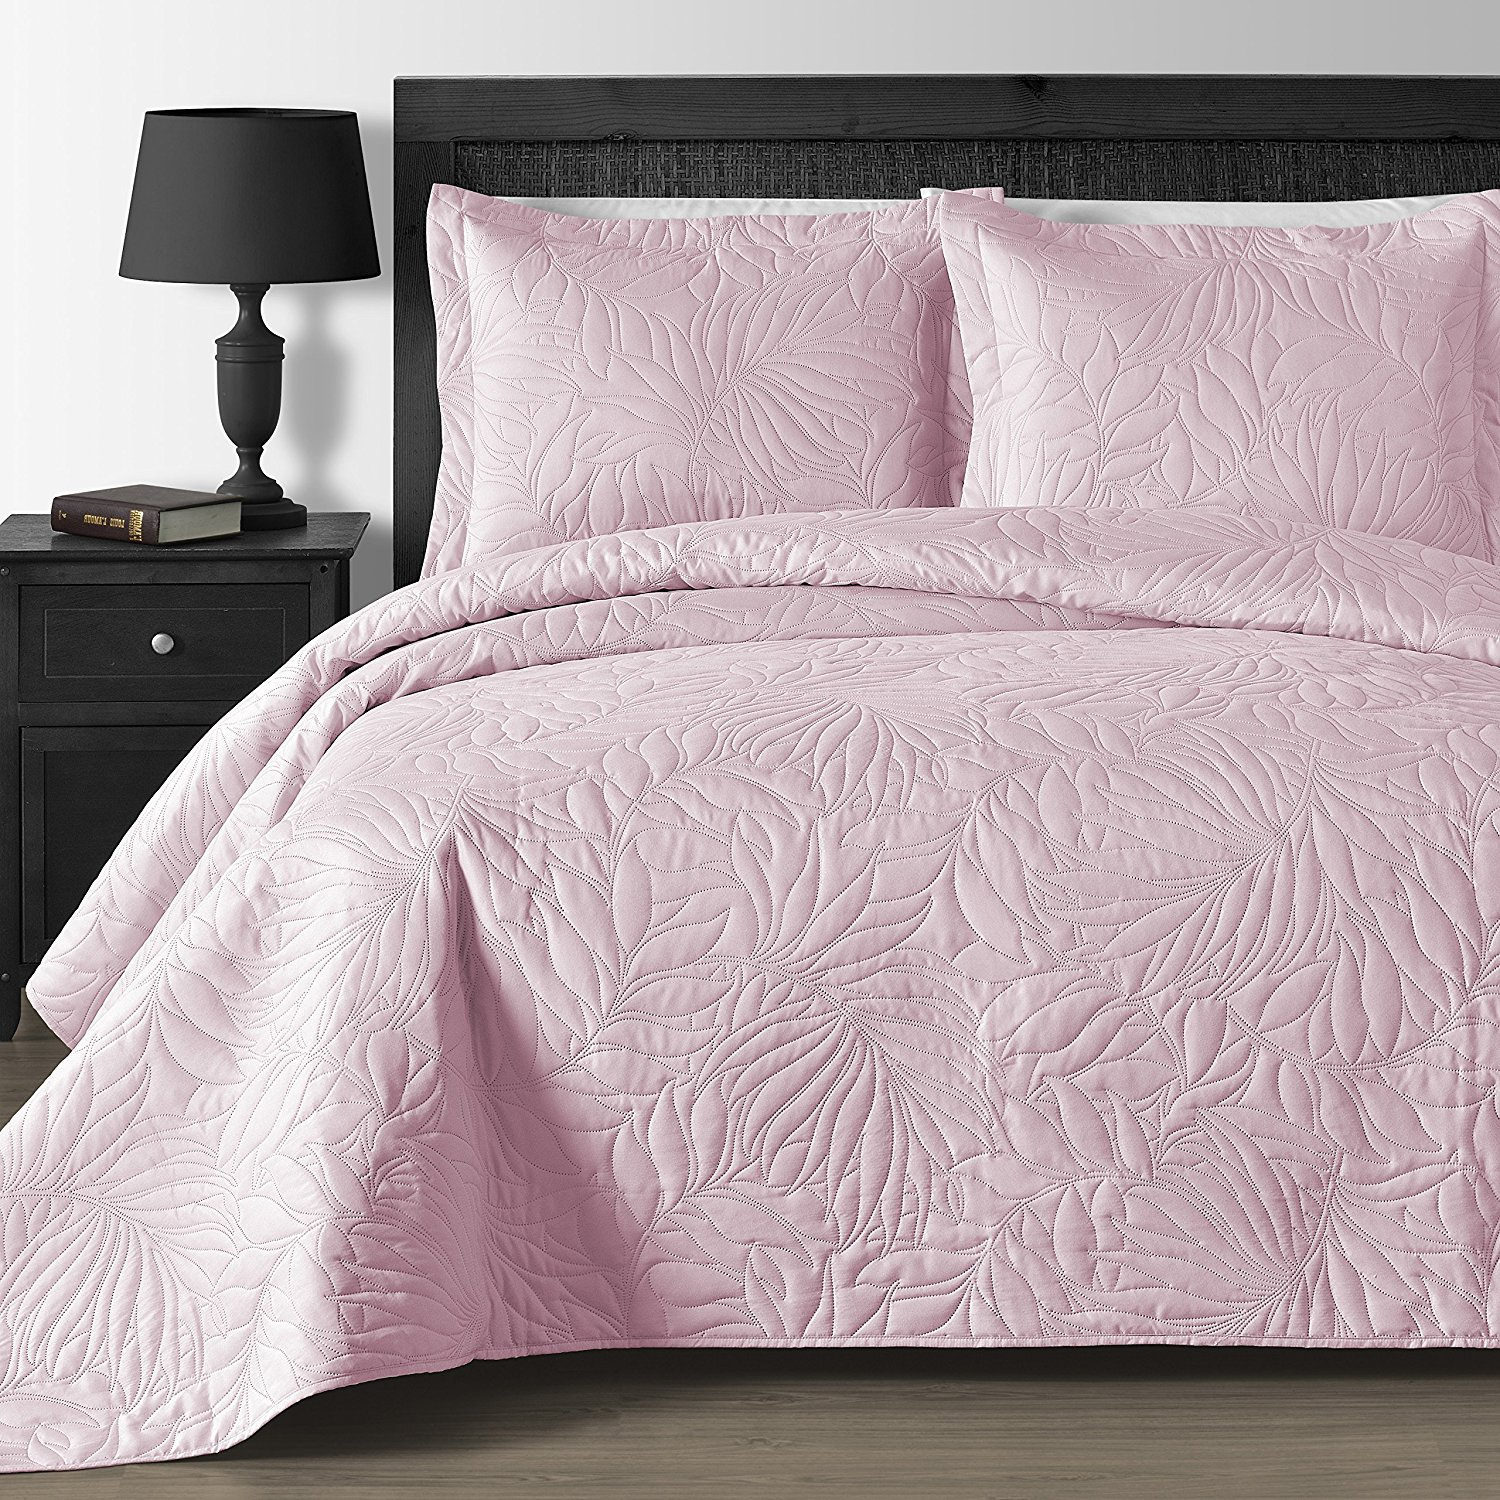 Oversized and Lightweight Leafage 3-piece Bedspread Coverlet Set